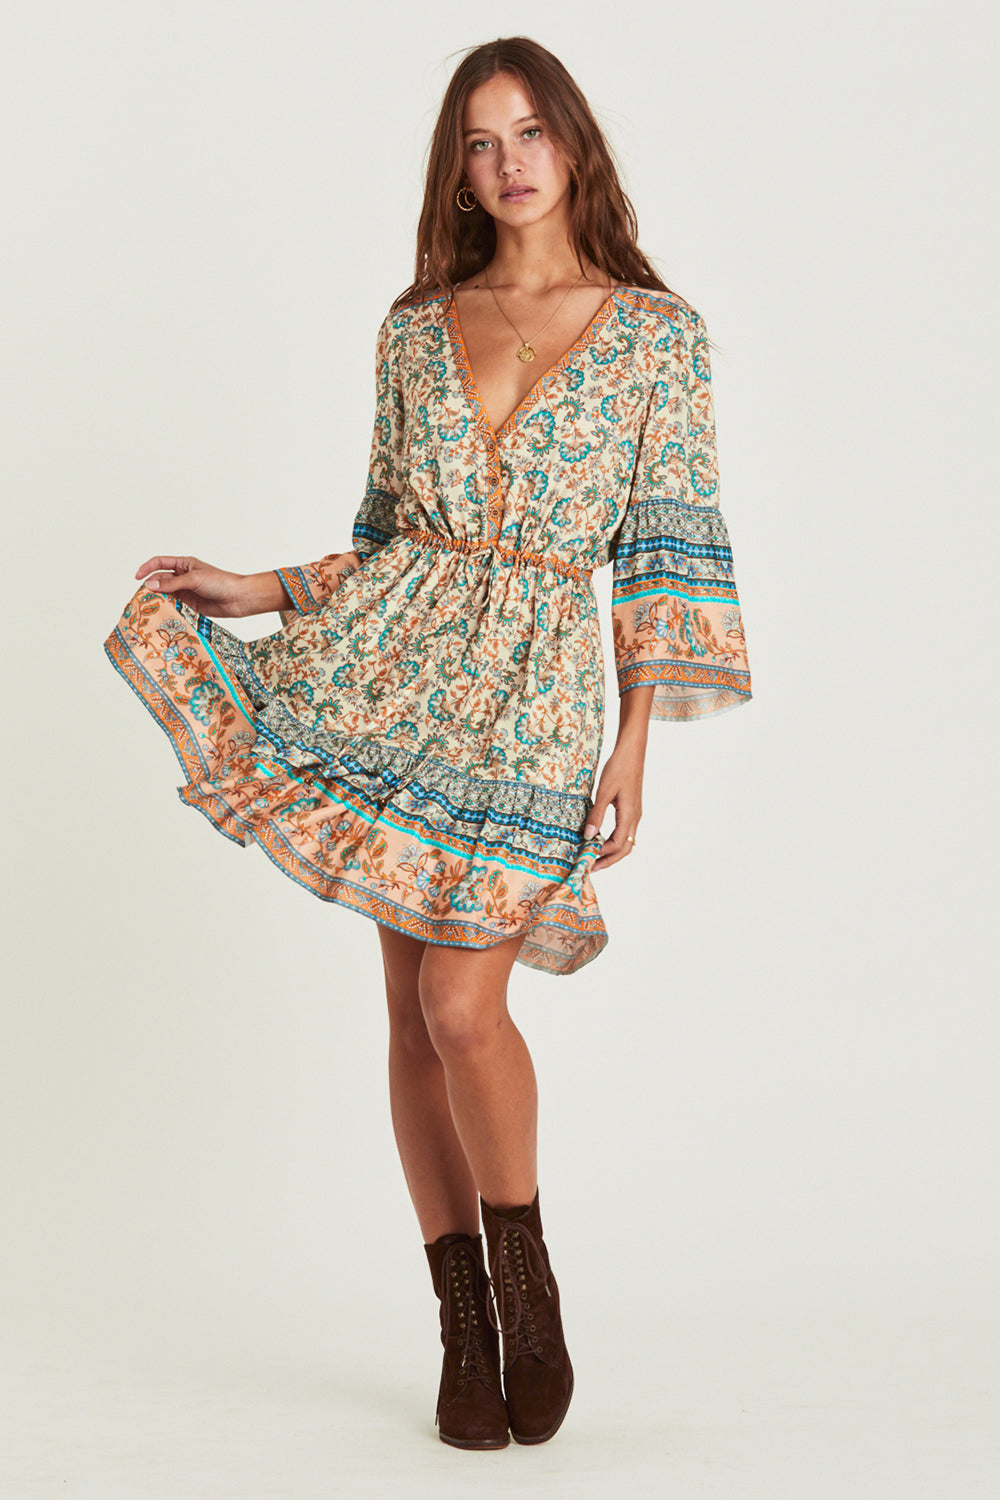 Amelie Mini Dress in Provence